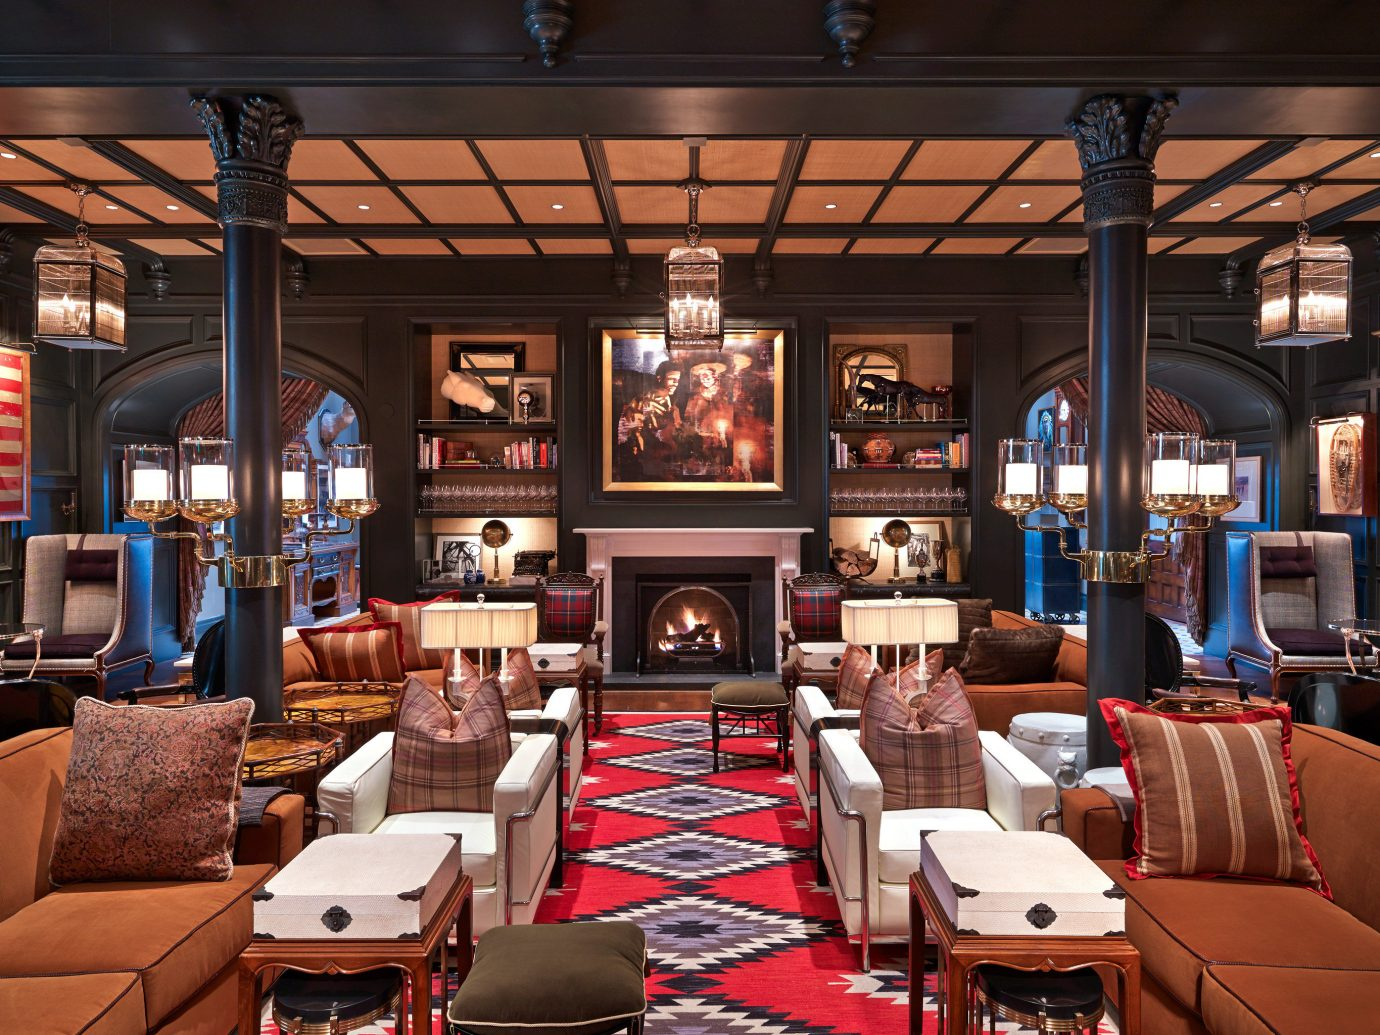 Fireplace Hotels Lobby Lounge Trip Ideas Winter indoor room Living restaurant interior design café Bar furniture several